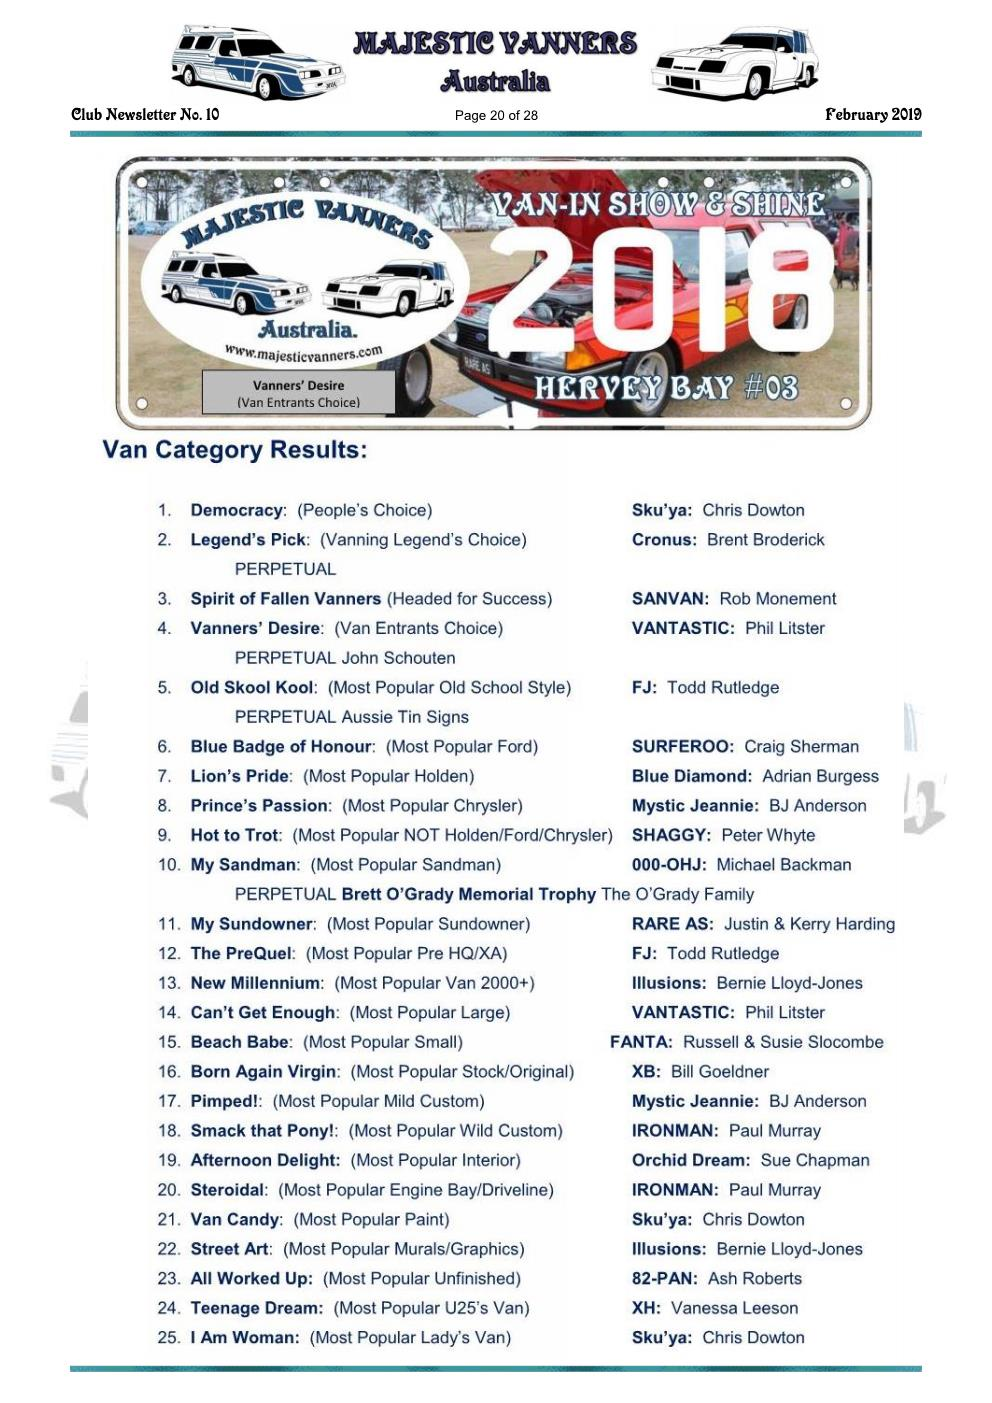 MAJESTIC VANNERS Newsletter Issue No: 10 February 2019 Mv_new30